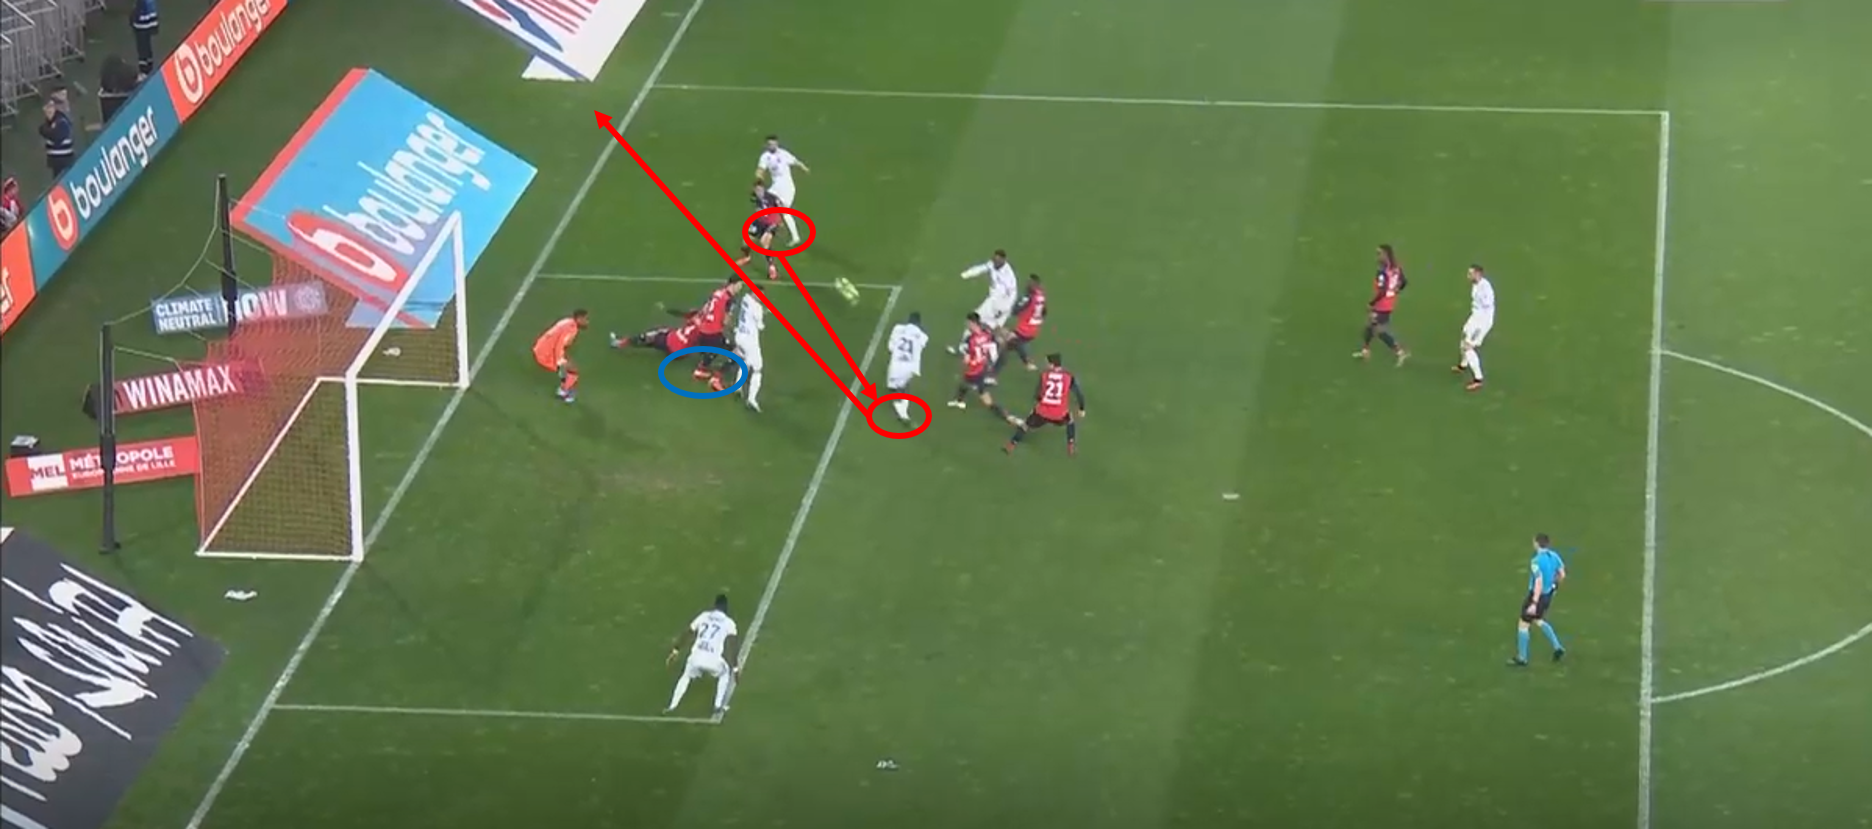 Ligue 1 2019/20: Lille vs Lyon – tactical analysis tactics